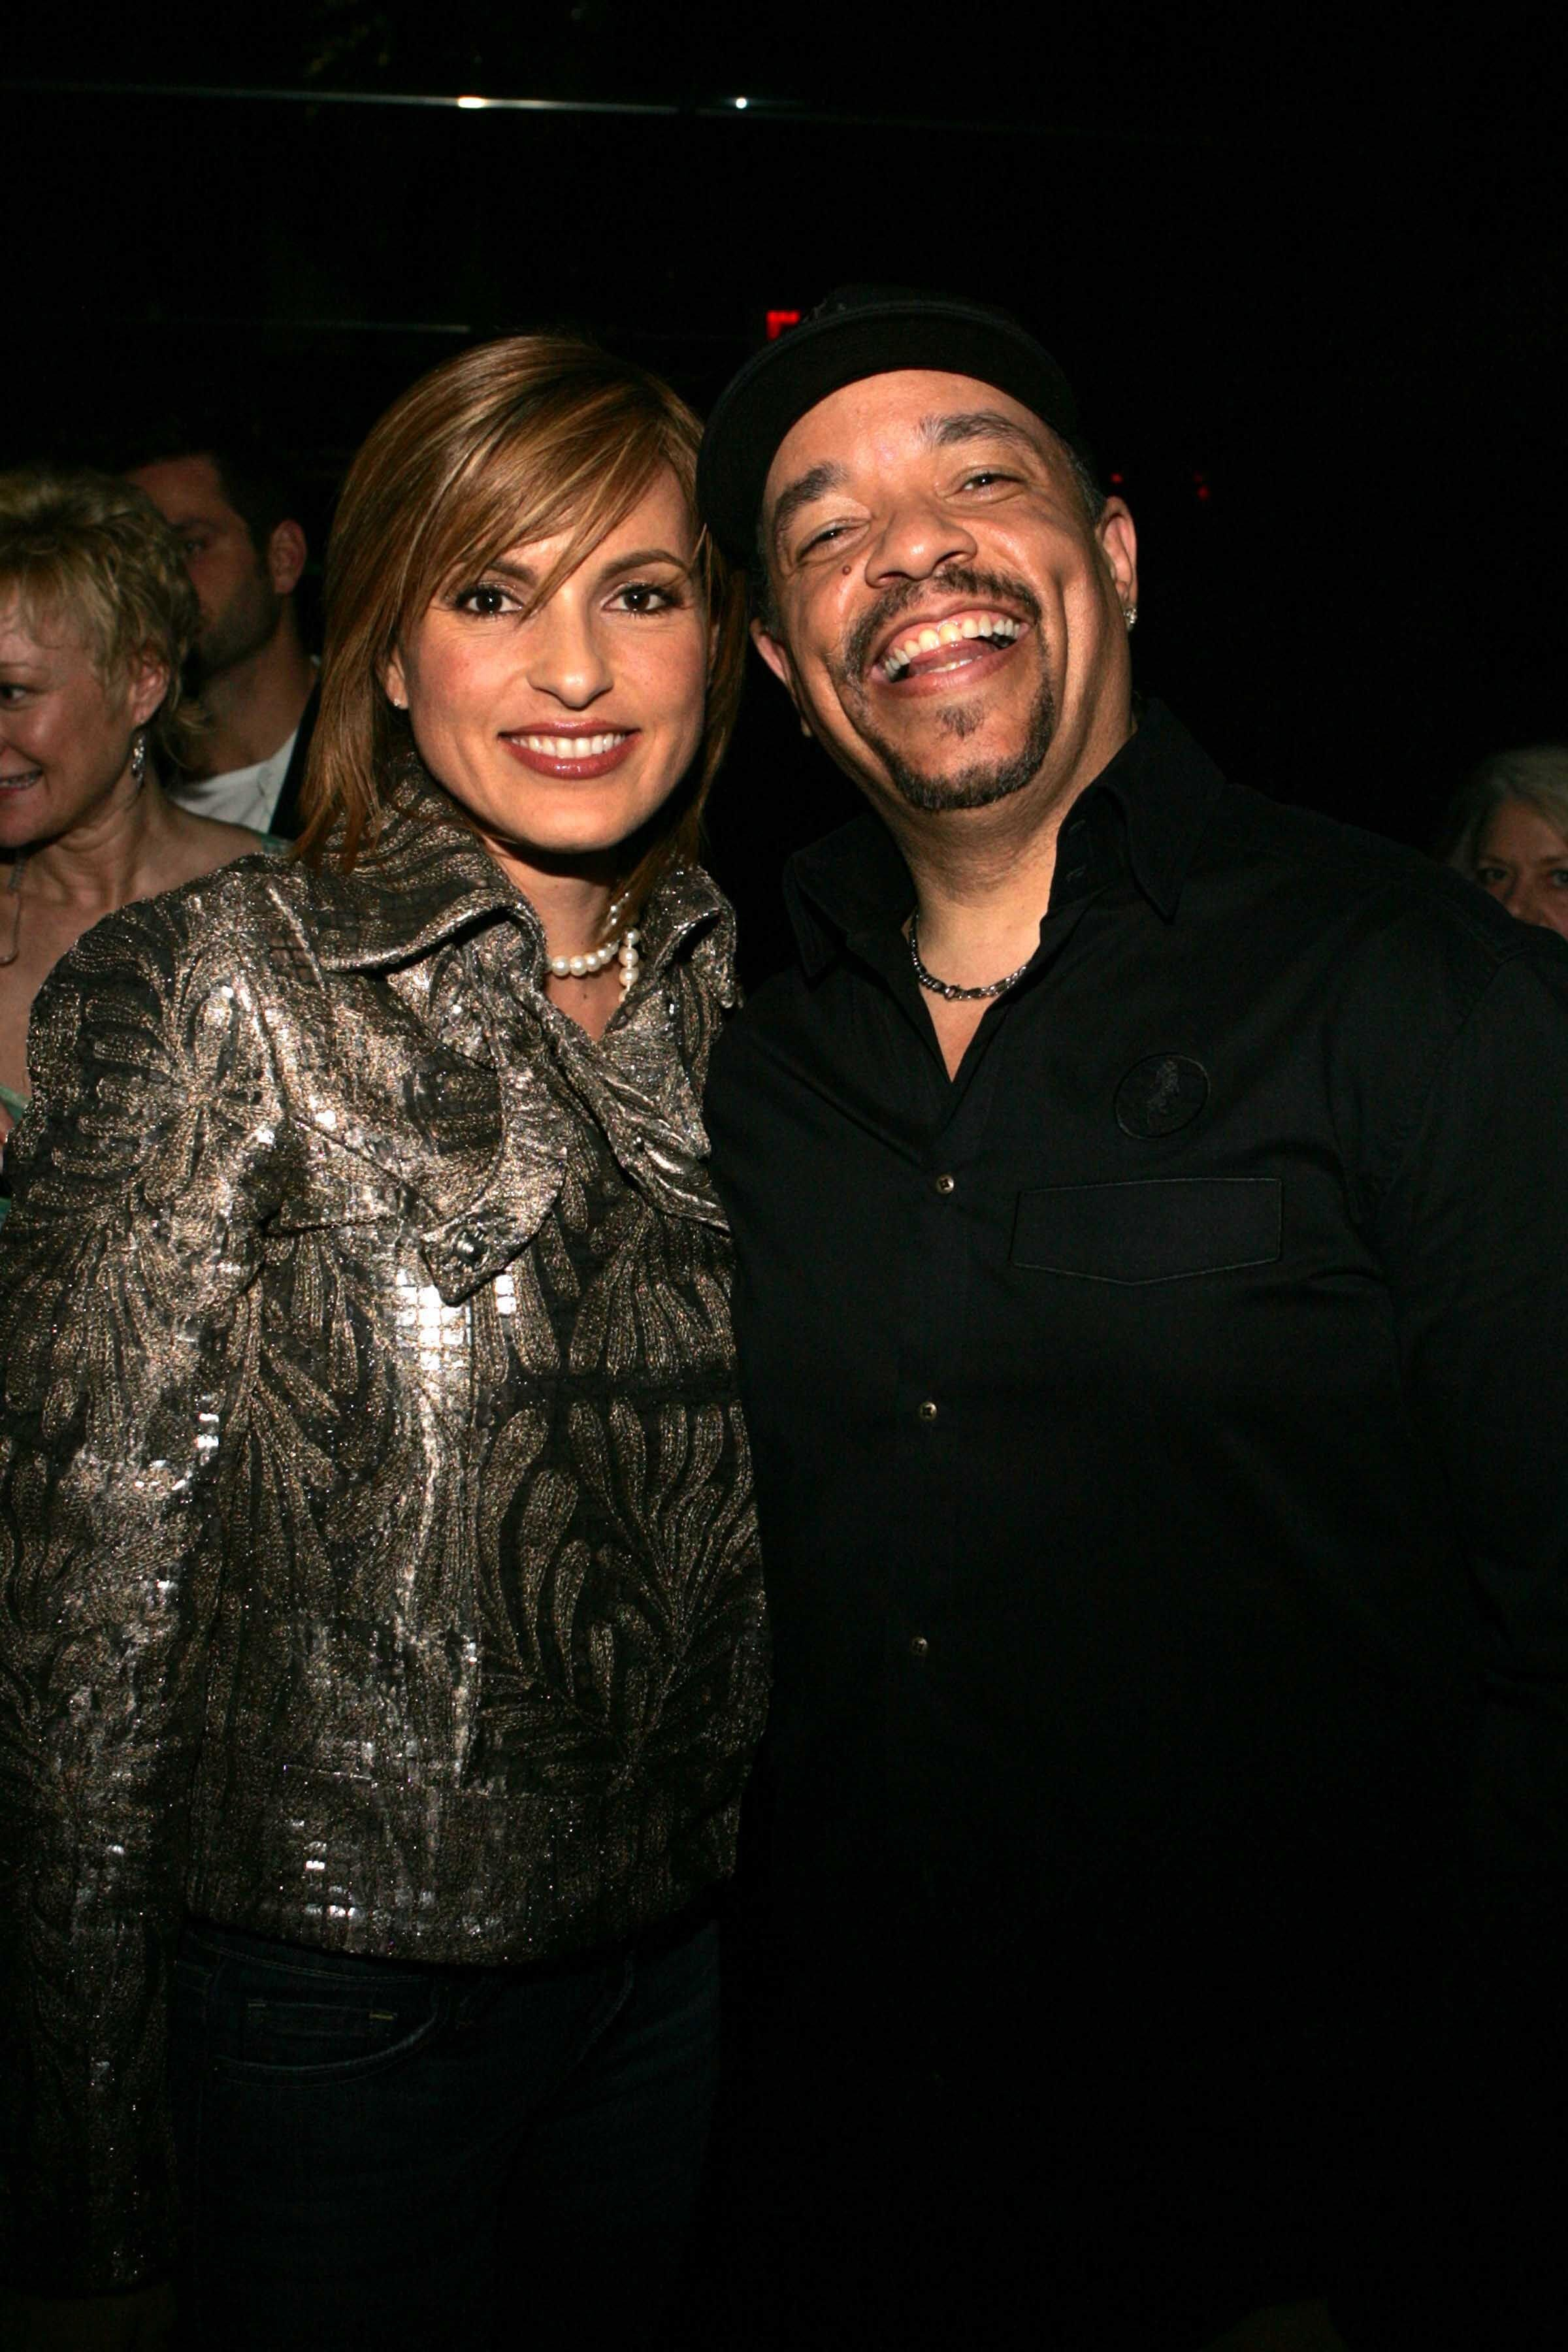 Mariska Hargitay and Ice-T at a fundraiser to benefit the Boys and Girls Clubs of Mt. Vernon | Source: Getty Images